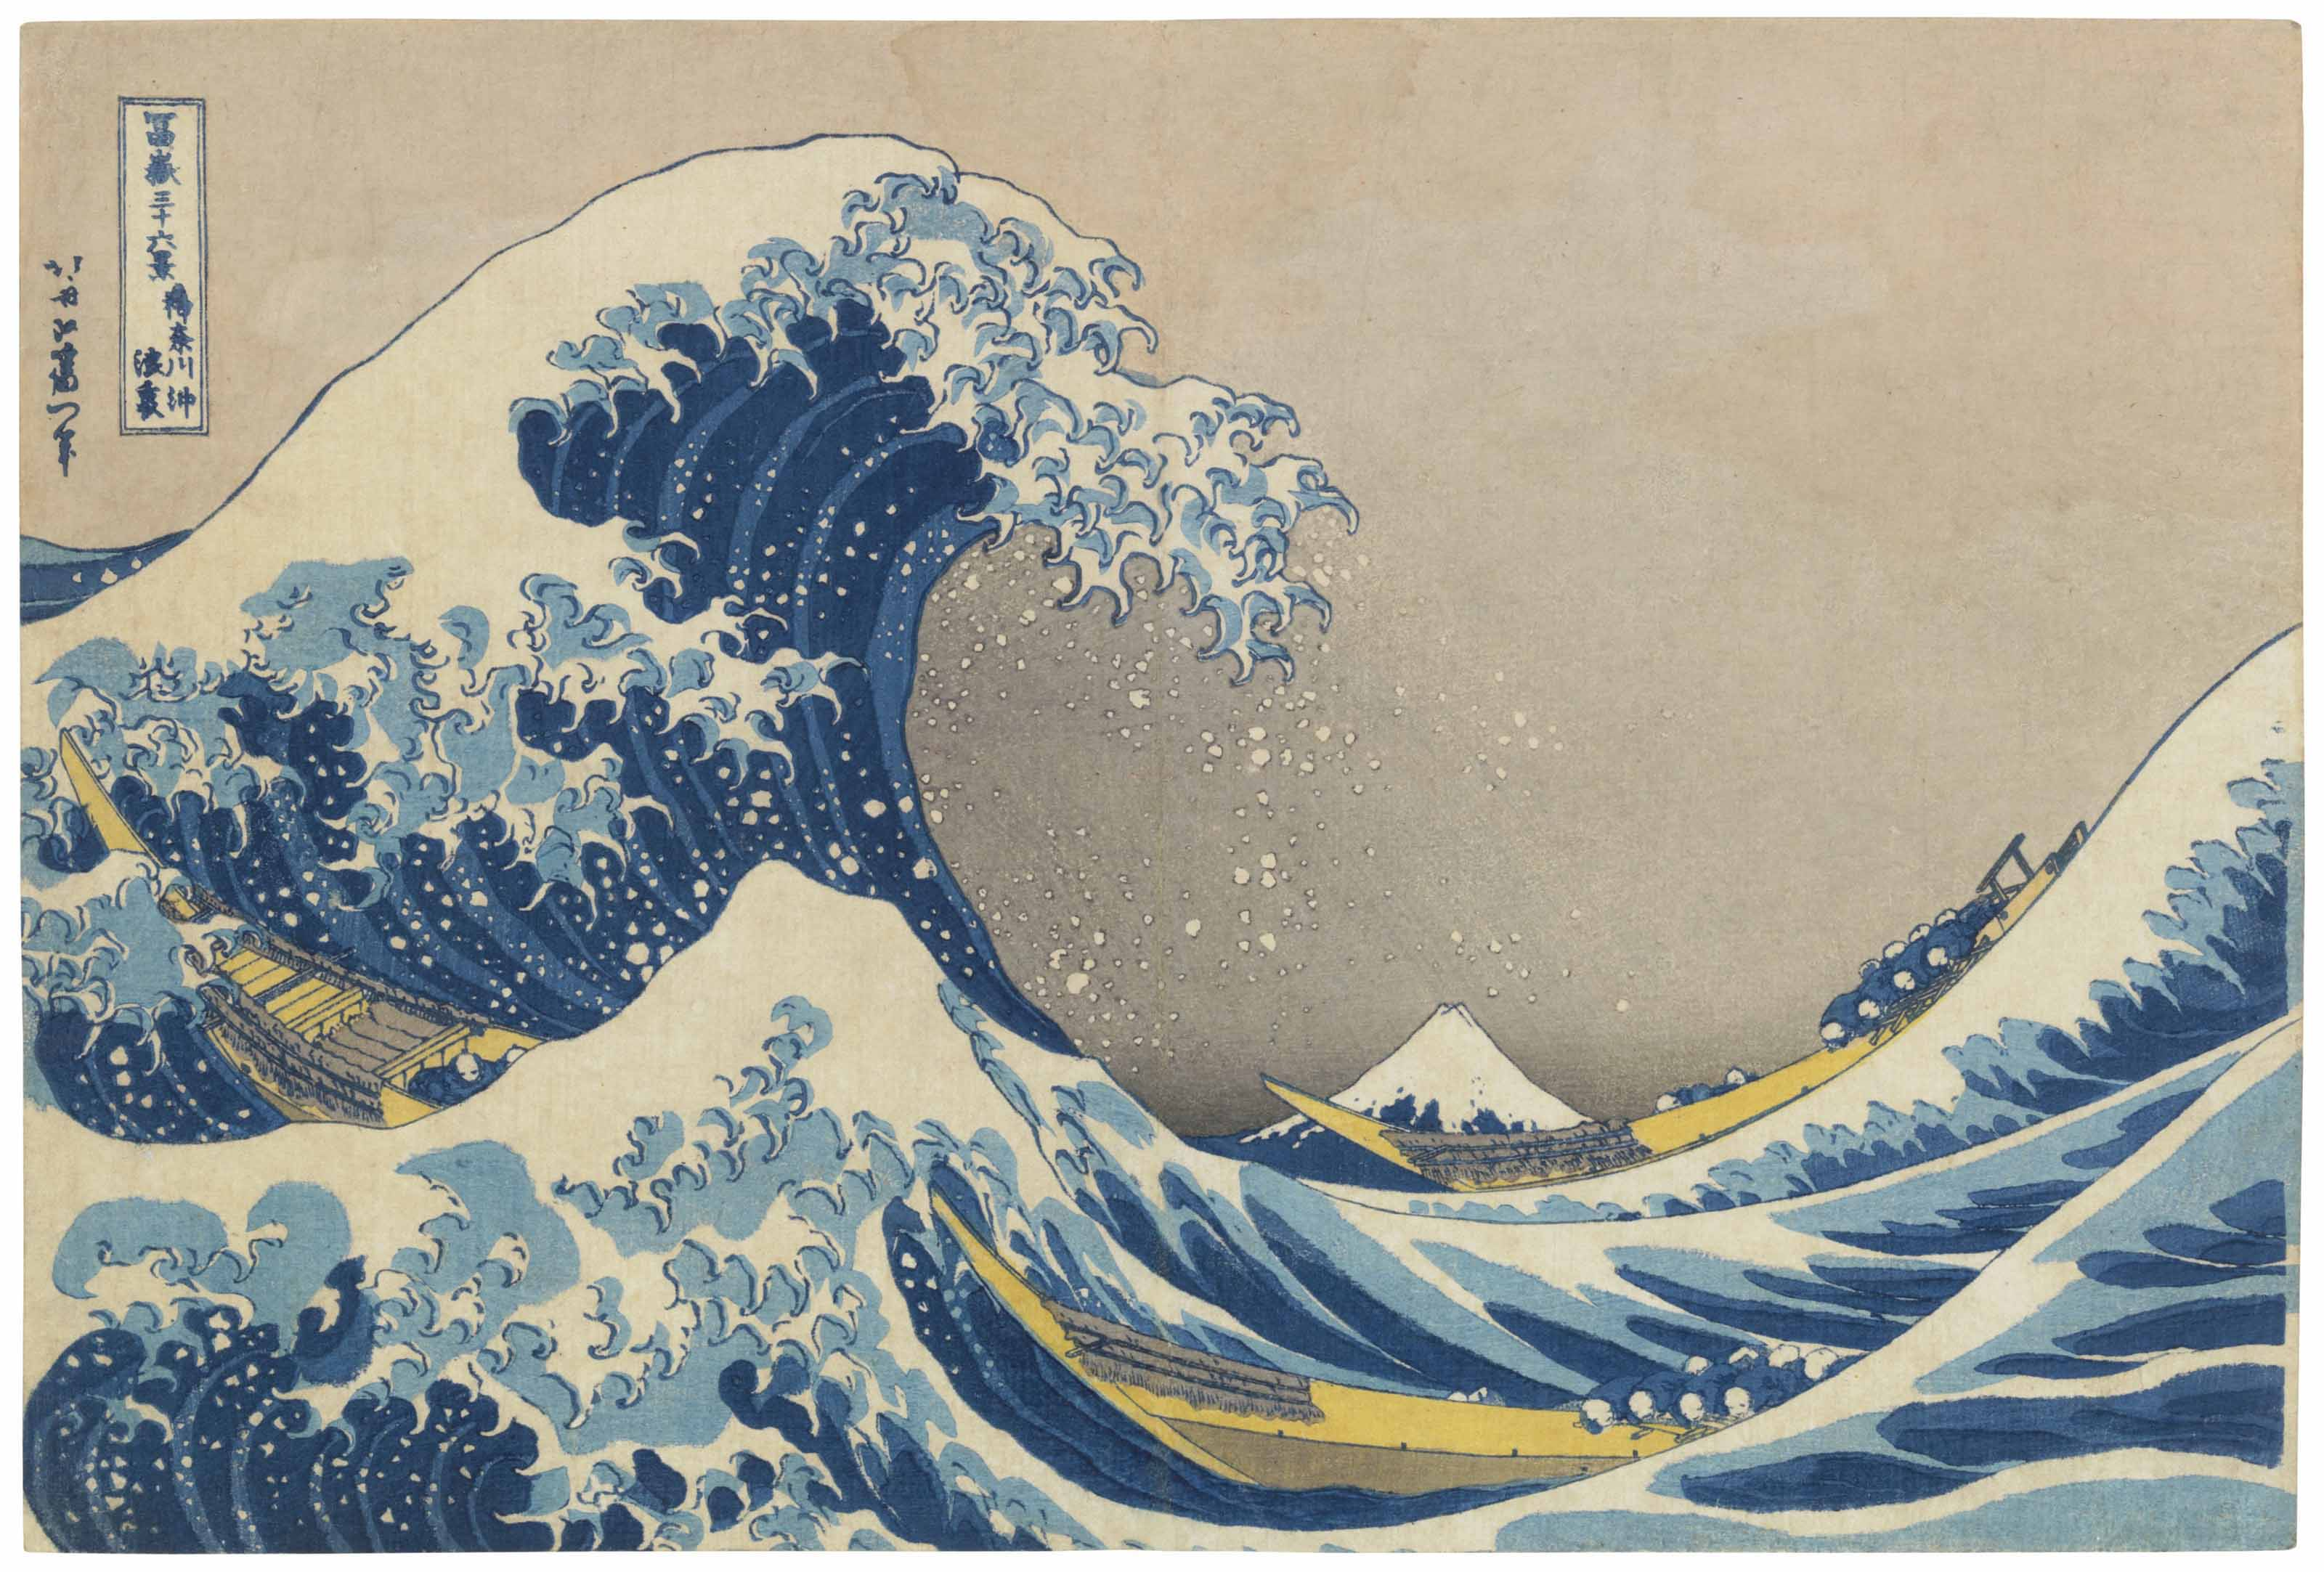 Katsushika Hokusai (1760-1849), Kanagawa Oki Nami Ura (In the Well of the Great Wave off Kanagawa), from the series Fugaku Sanjurokkei (Thirty-Six Views of Mount Fuji). 9¾ x 14¾  in (24.8 x 37.5  cm). Sold for $540,500 on 18 April 2018 at Christie's in New York